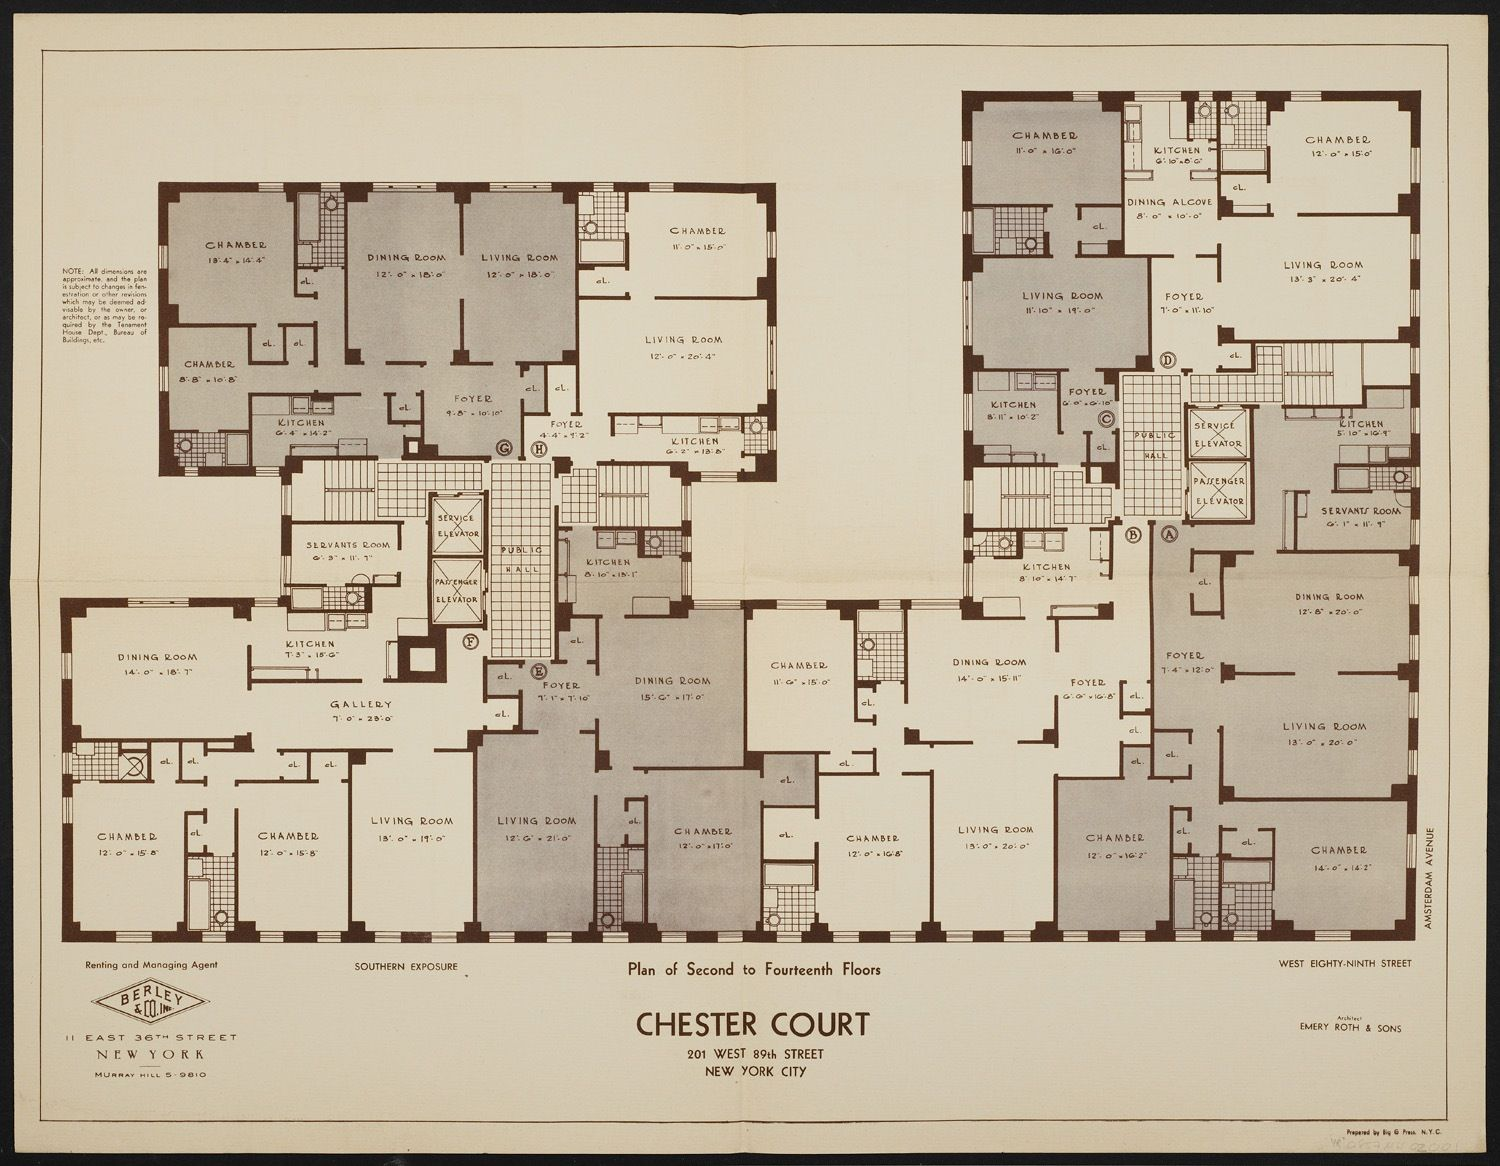 Floor Plans Floor Plans 171 Chester Court Floor Plans